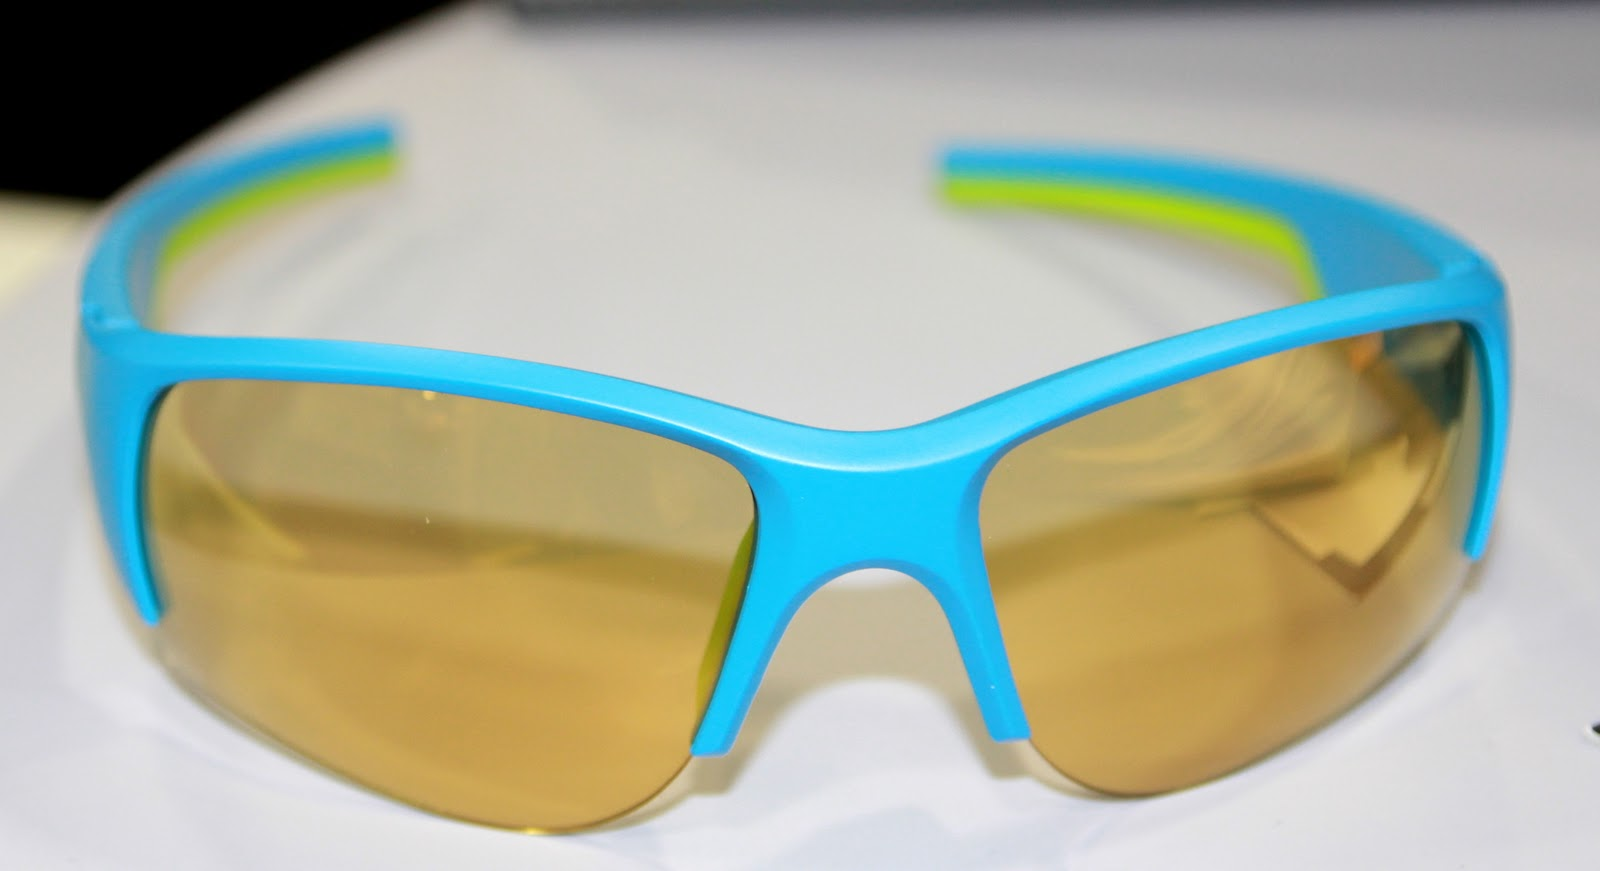 0c1835e1209 Julbo s Dust...lightweight...with a  grippy  nosepiece good for  sweat-inducing sports like running and cycling.